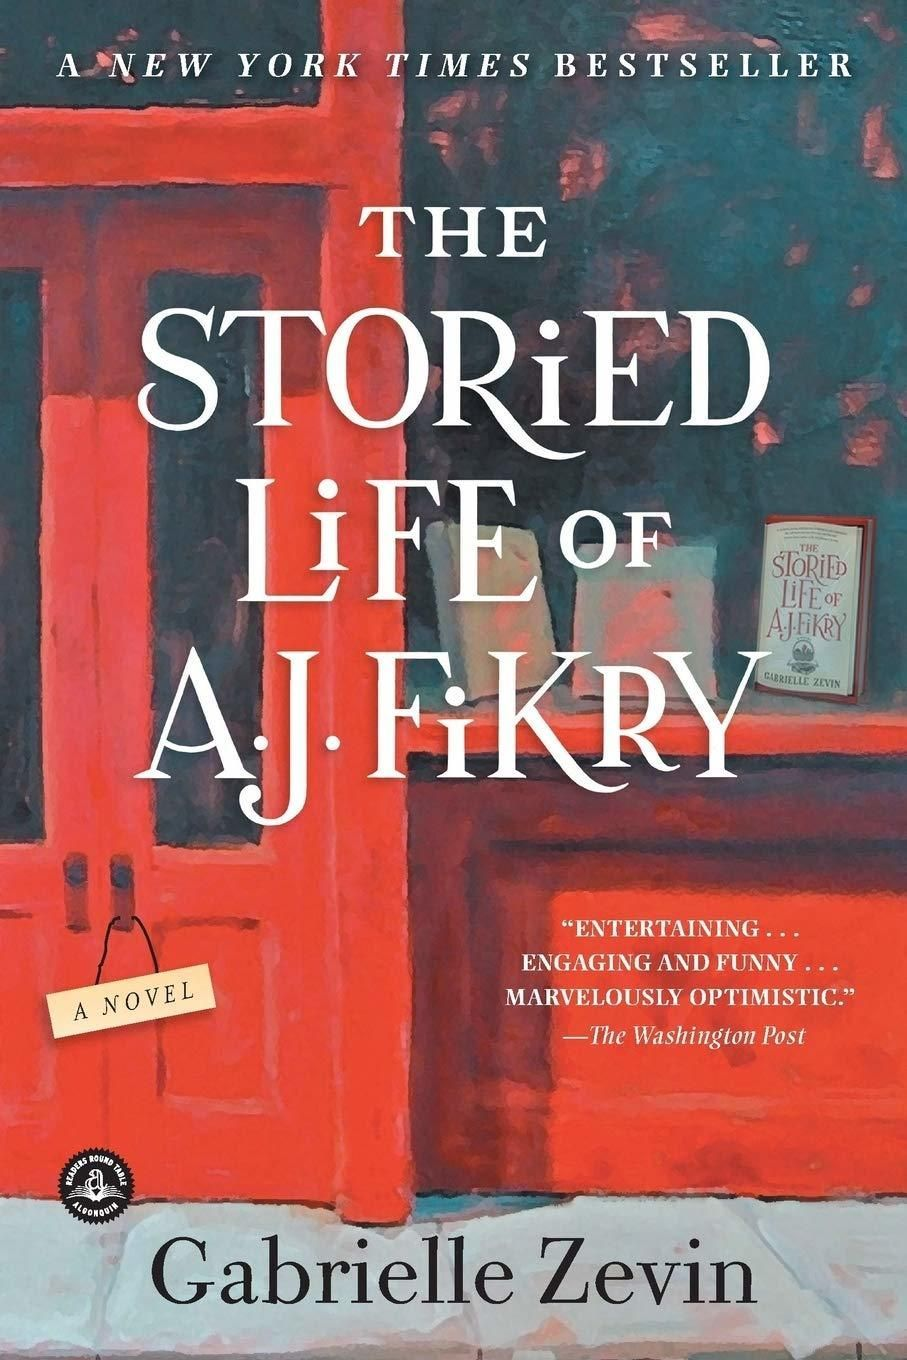 """Image of the book cover for """"The Storied Life of A.J. Fikry"""" by Gabrielle Zevin featuring the front entrance and display of a small-town bookstore."""